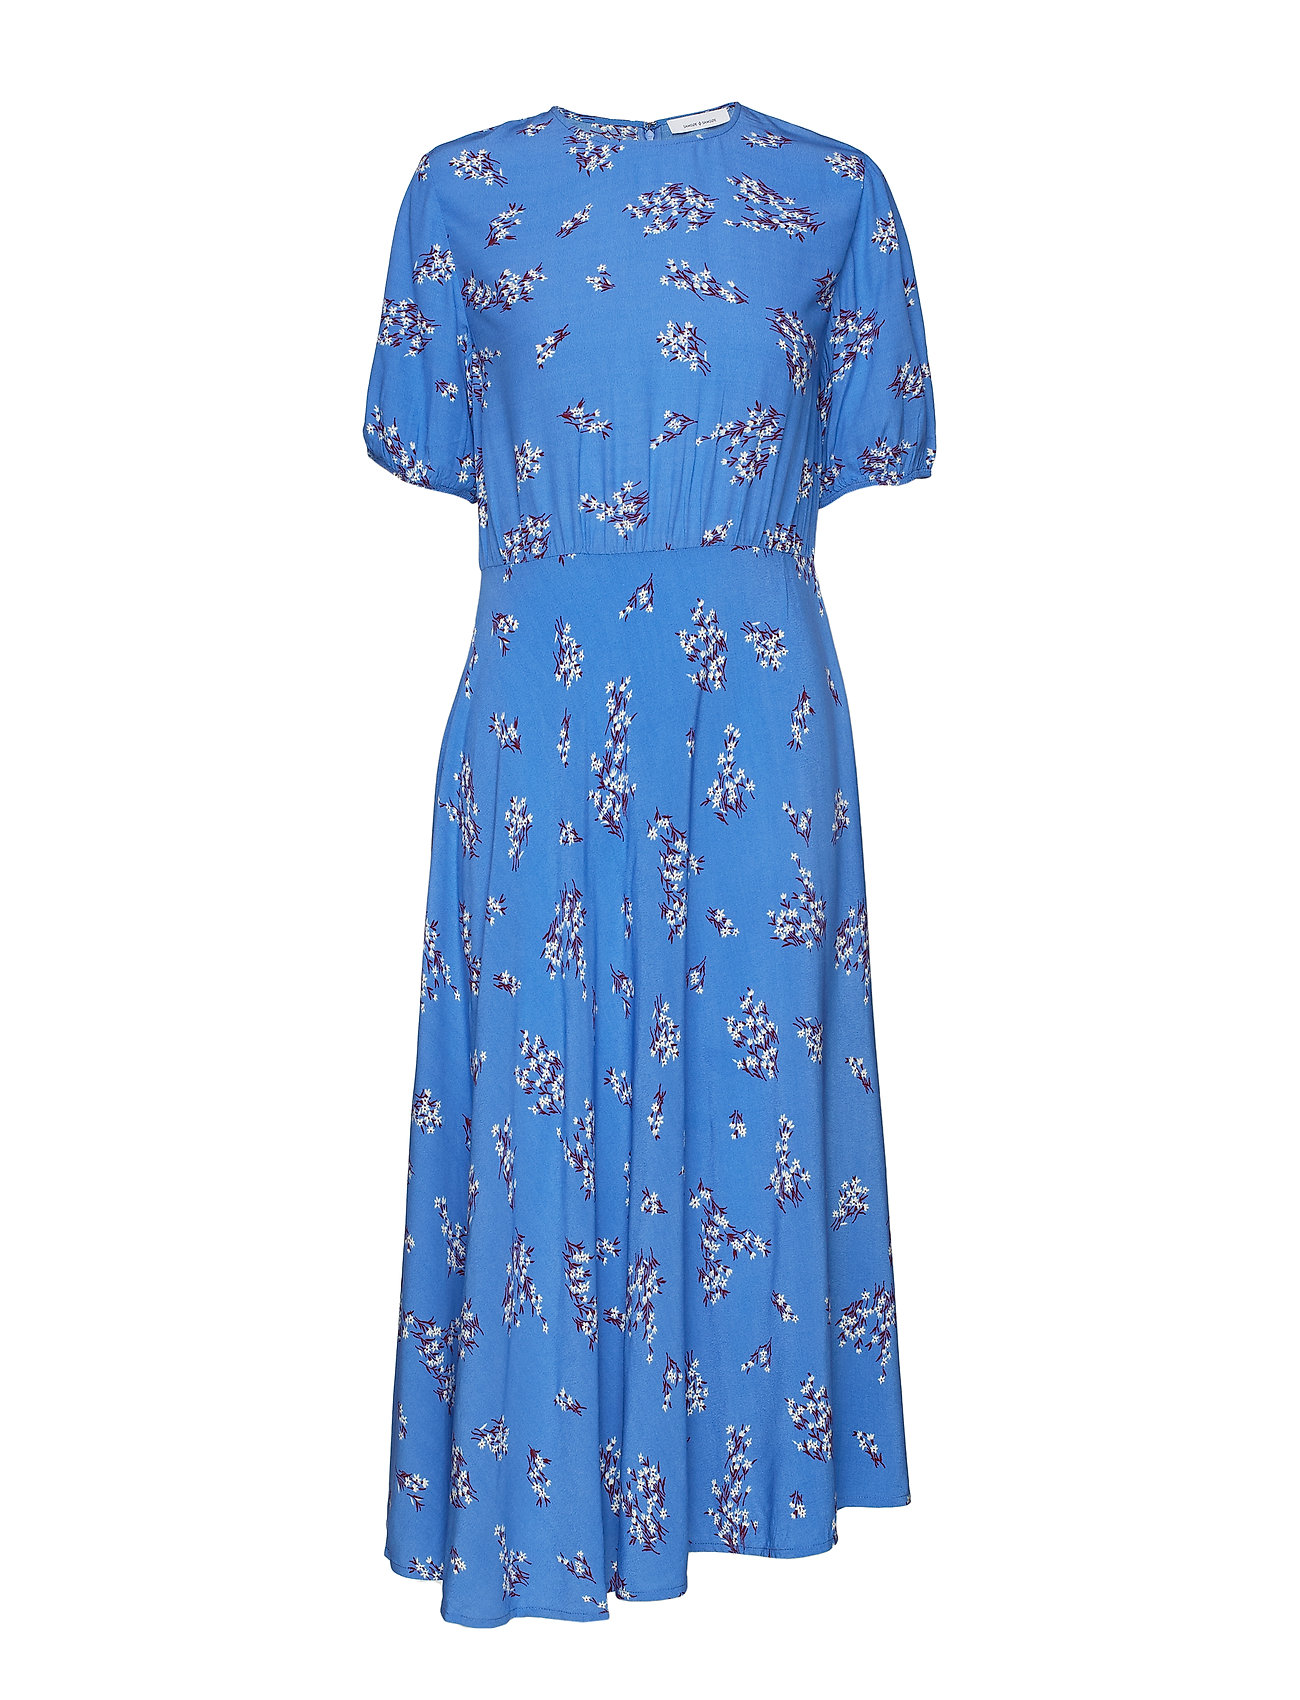 6735c8c0 Decora Dress Aop 10864 (Blue Breeze) (900 kr) - Samsøe & Samsøe ...